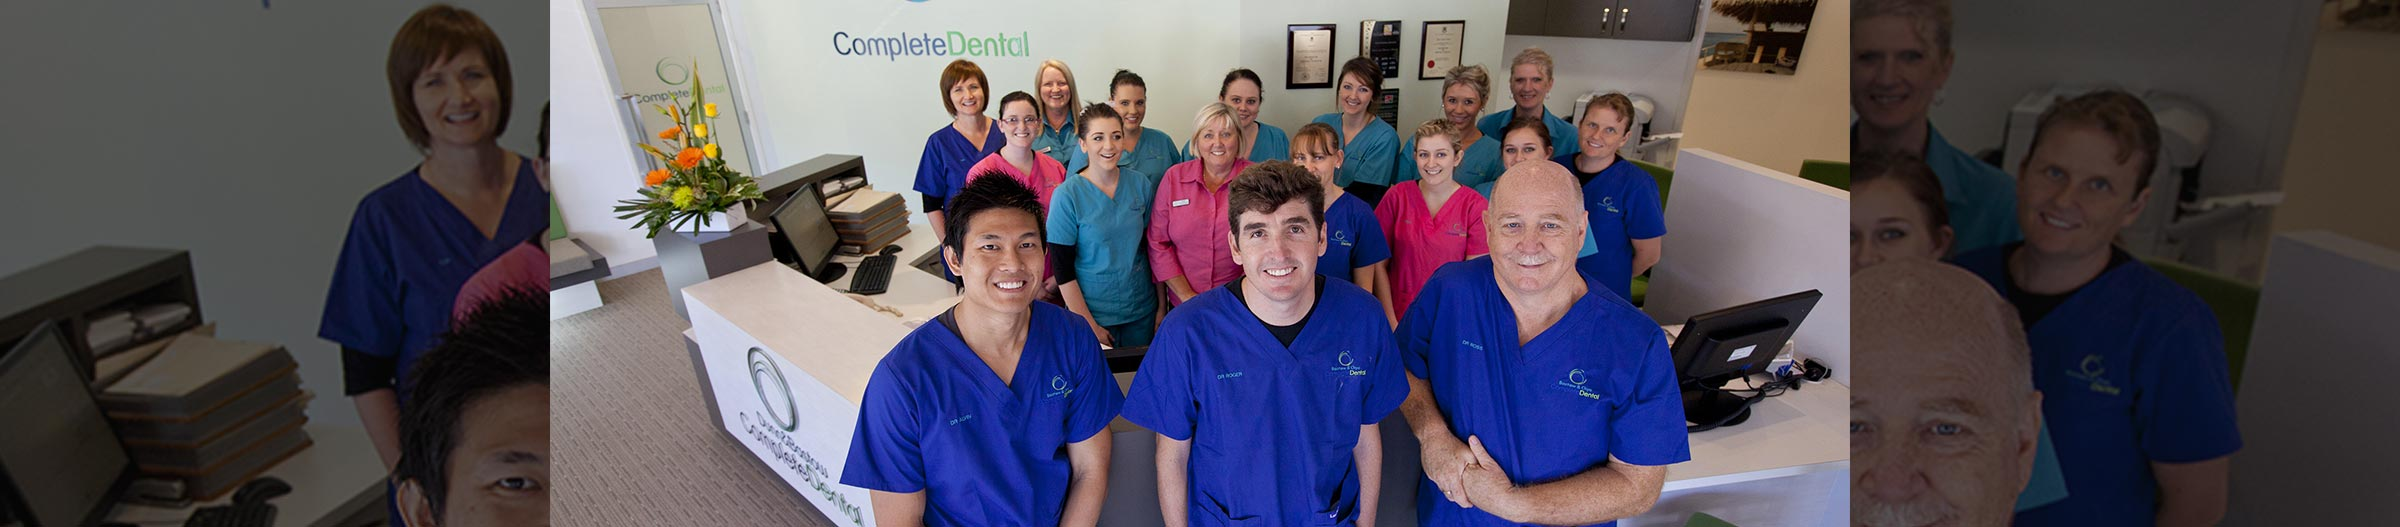 Complete-Dental-Wynnum-by-Faith-Thiang-Slider-Image